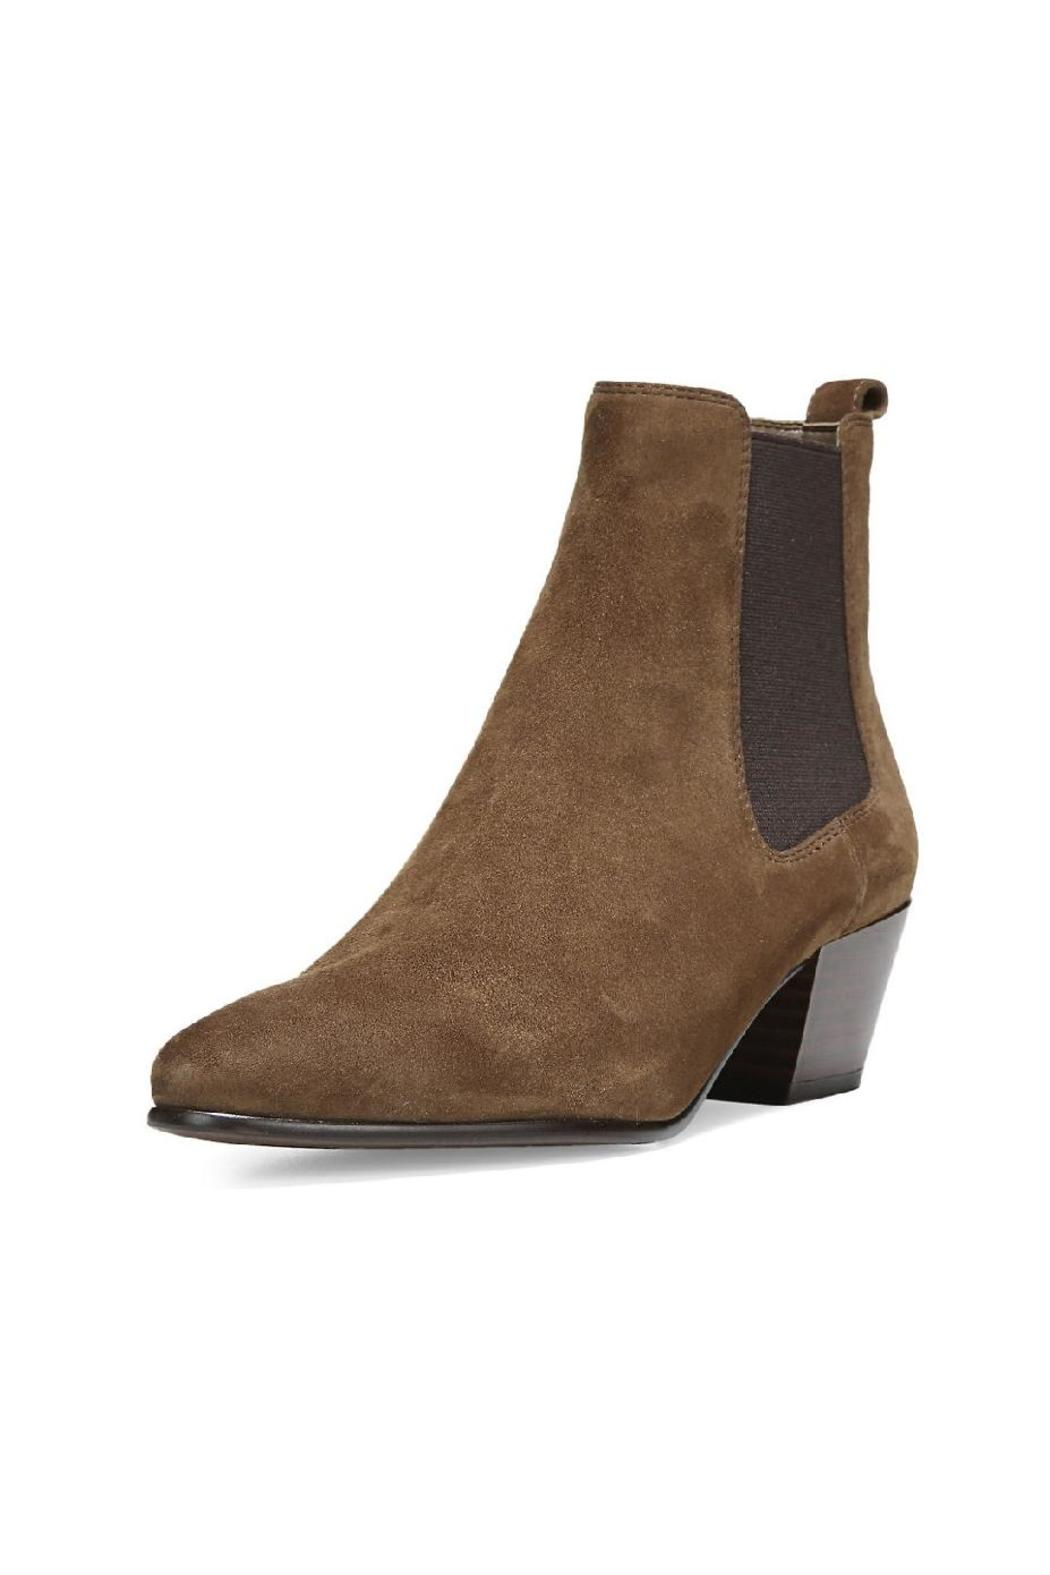 ade3a2670adb Sam Edelman Reesa Ankle Bootie from Hudson Valley by Bfree — Shoptiques